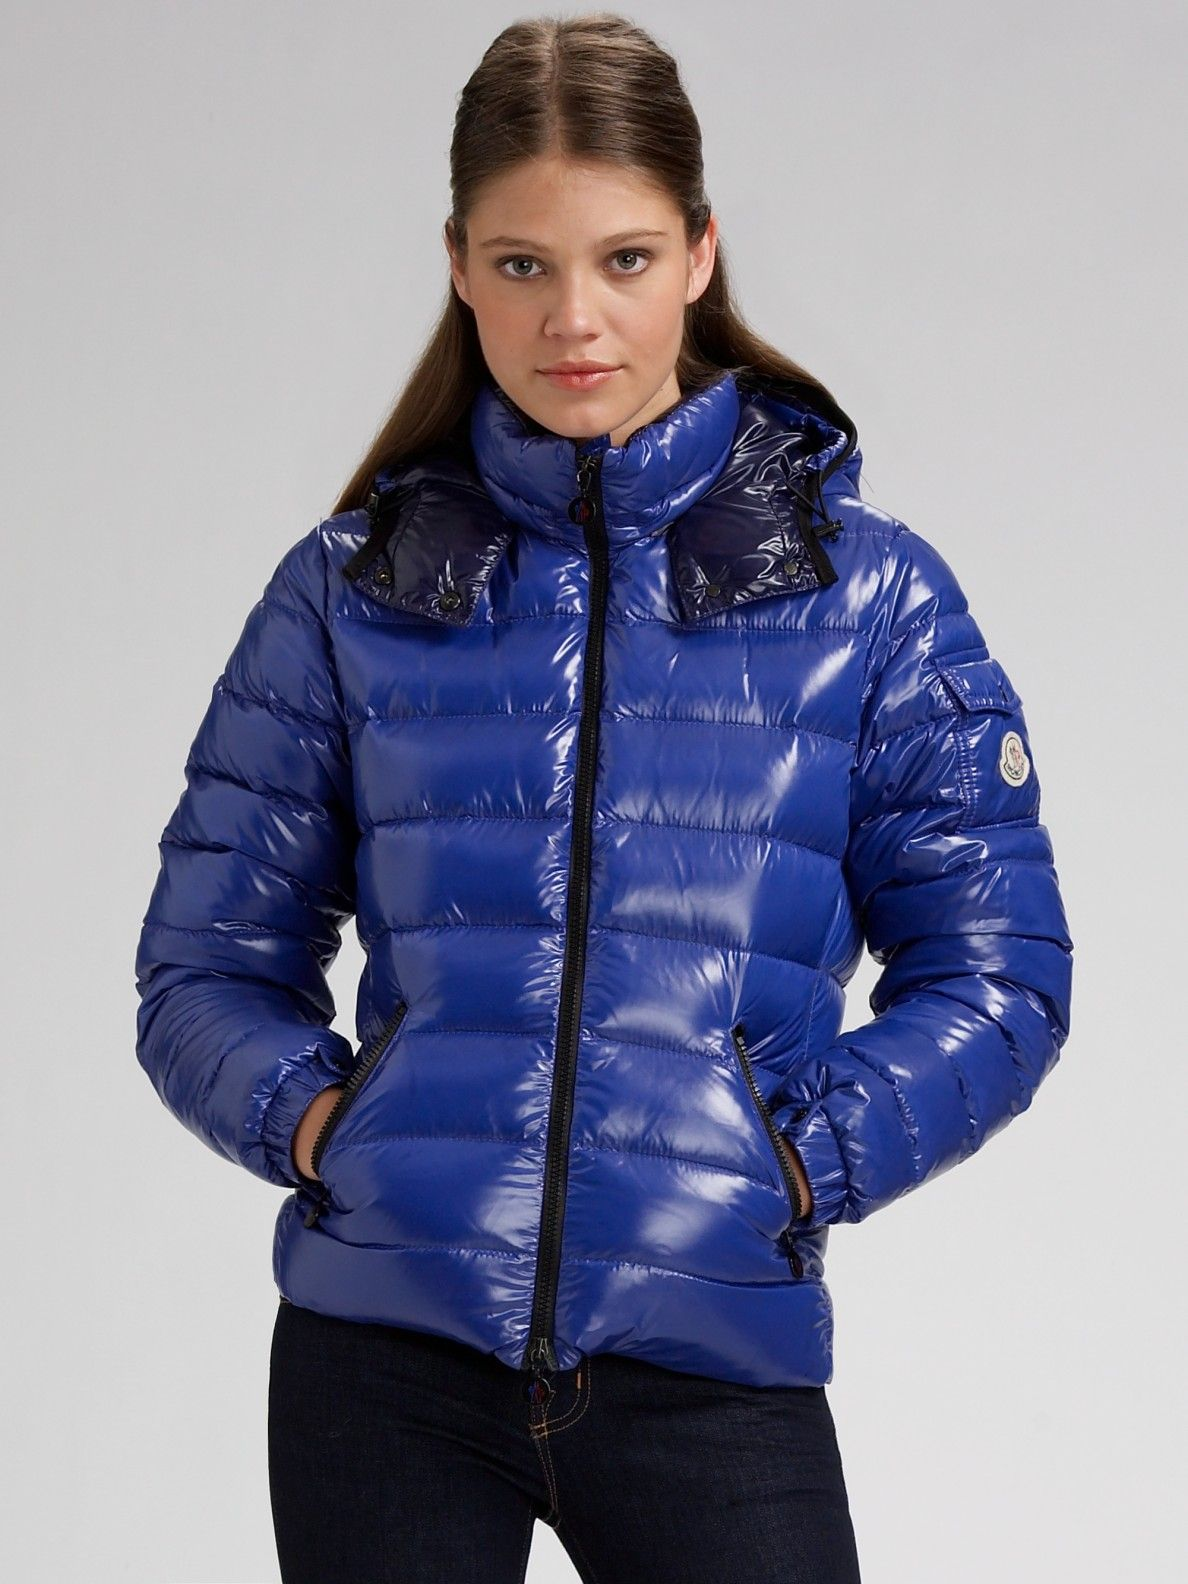 Puffy Jacket, Moncler, Hoods, 21st Century, Army, Jackets, Gi Joe, Cowls, Cooker Hoods, Military, Food, Range Hoods